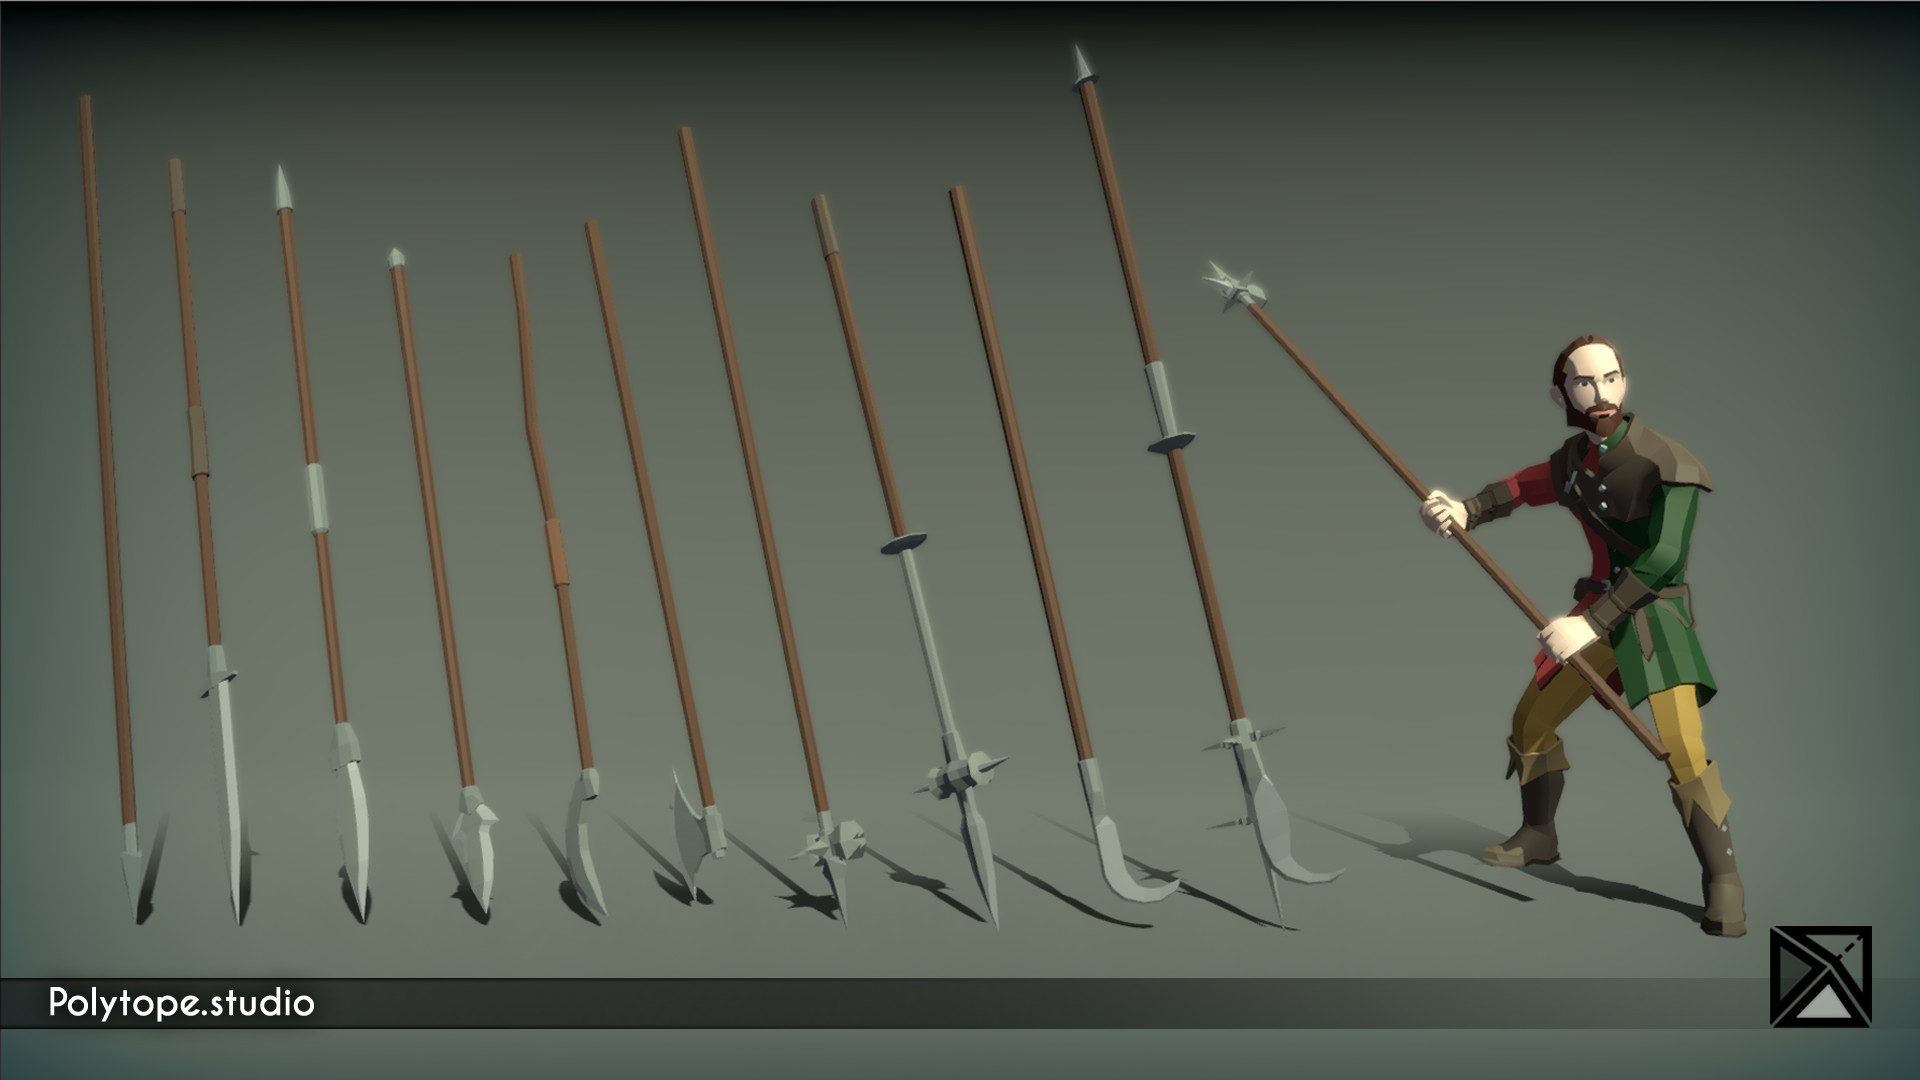 Polytope studio pt medieval lowpoly weapons pike halberd spear